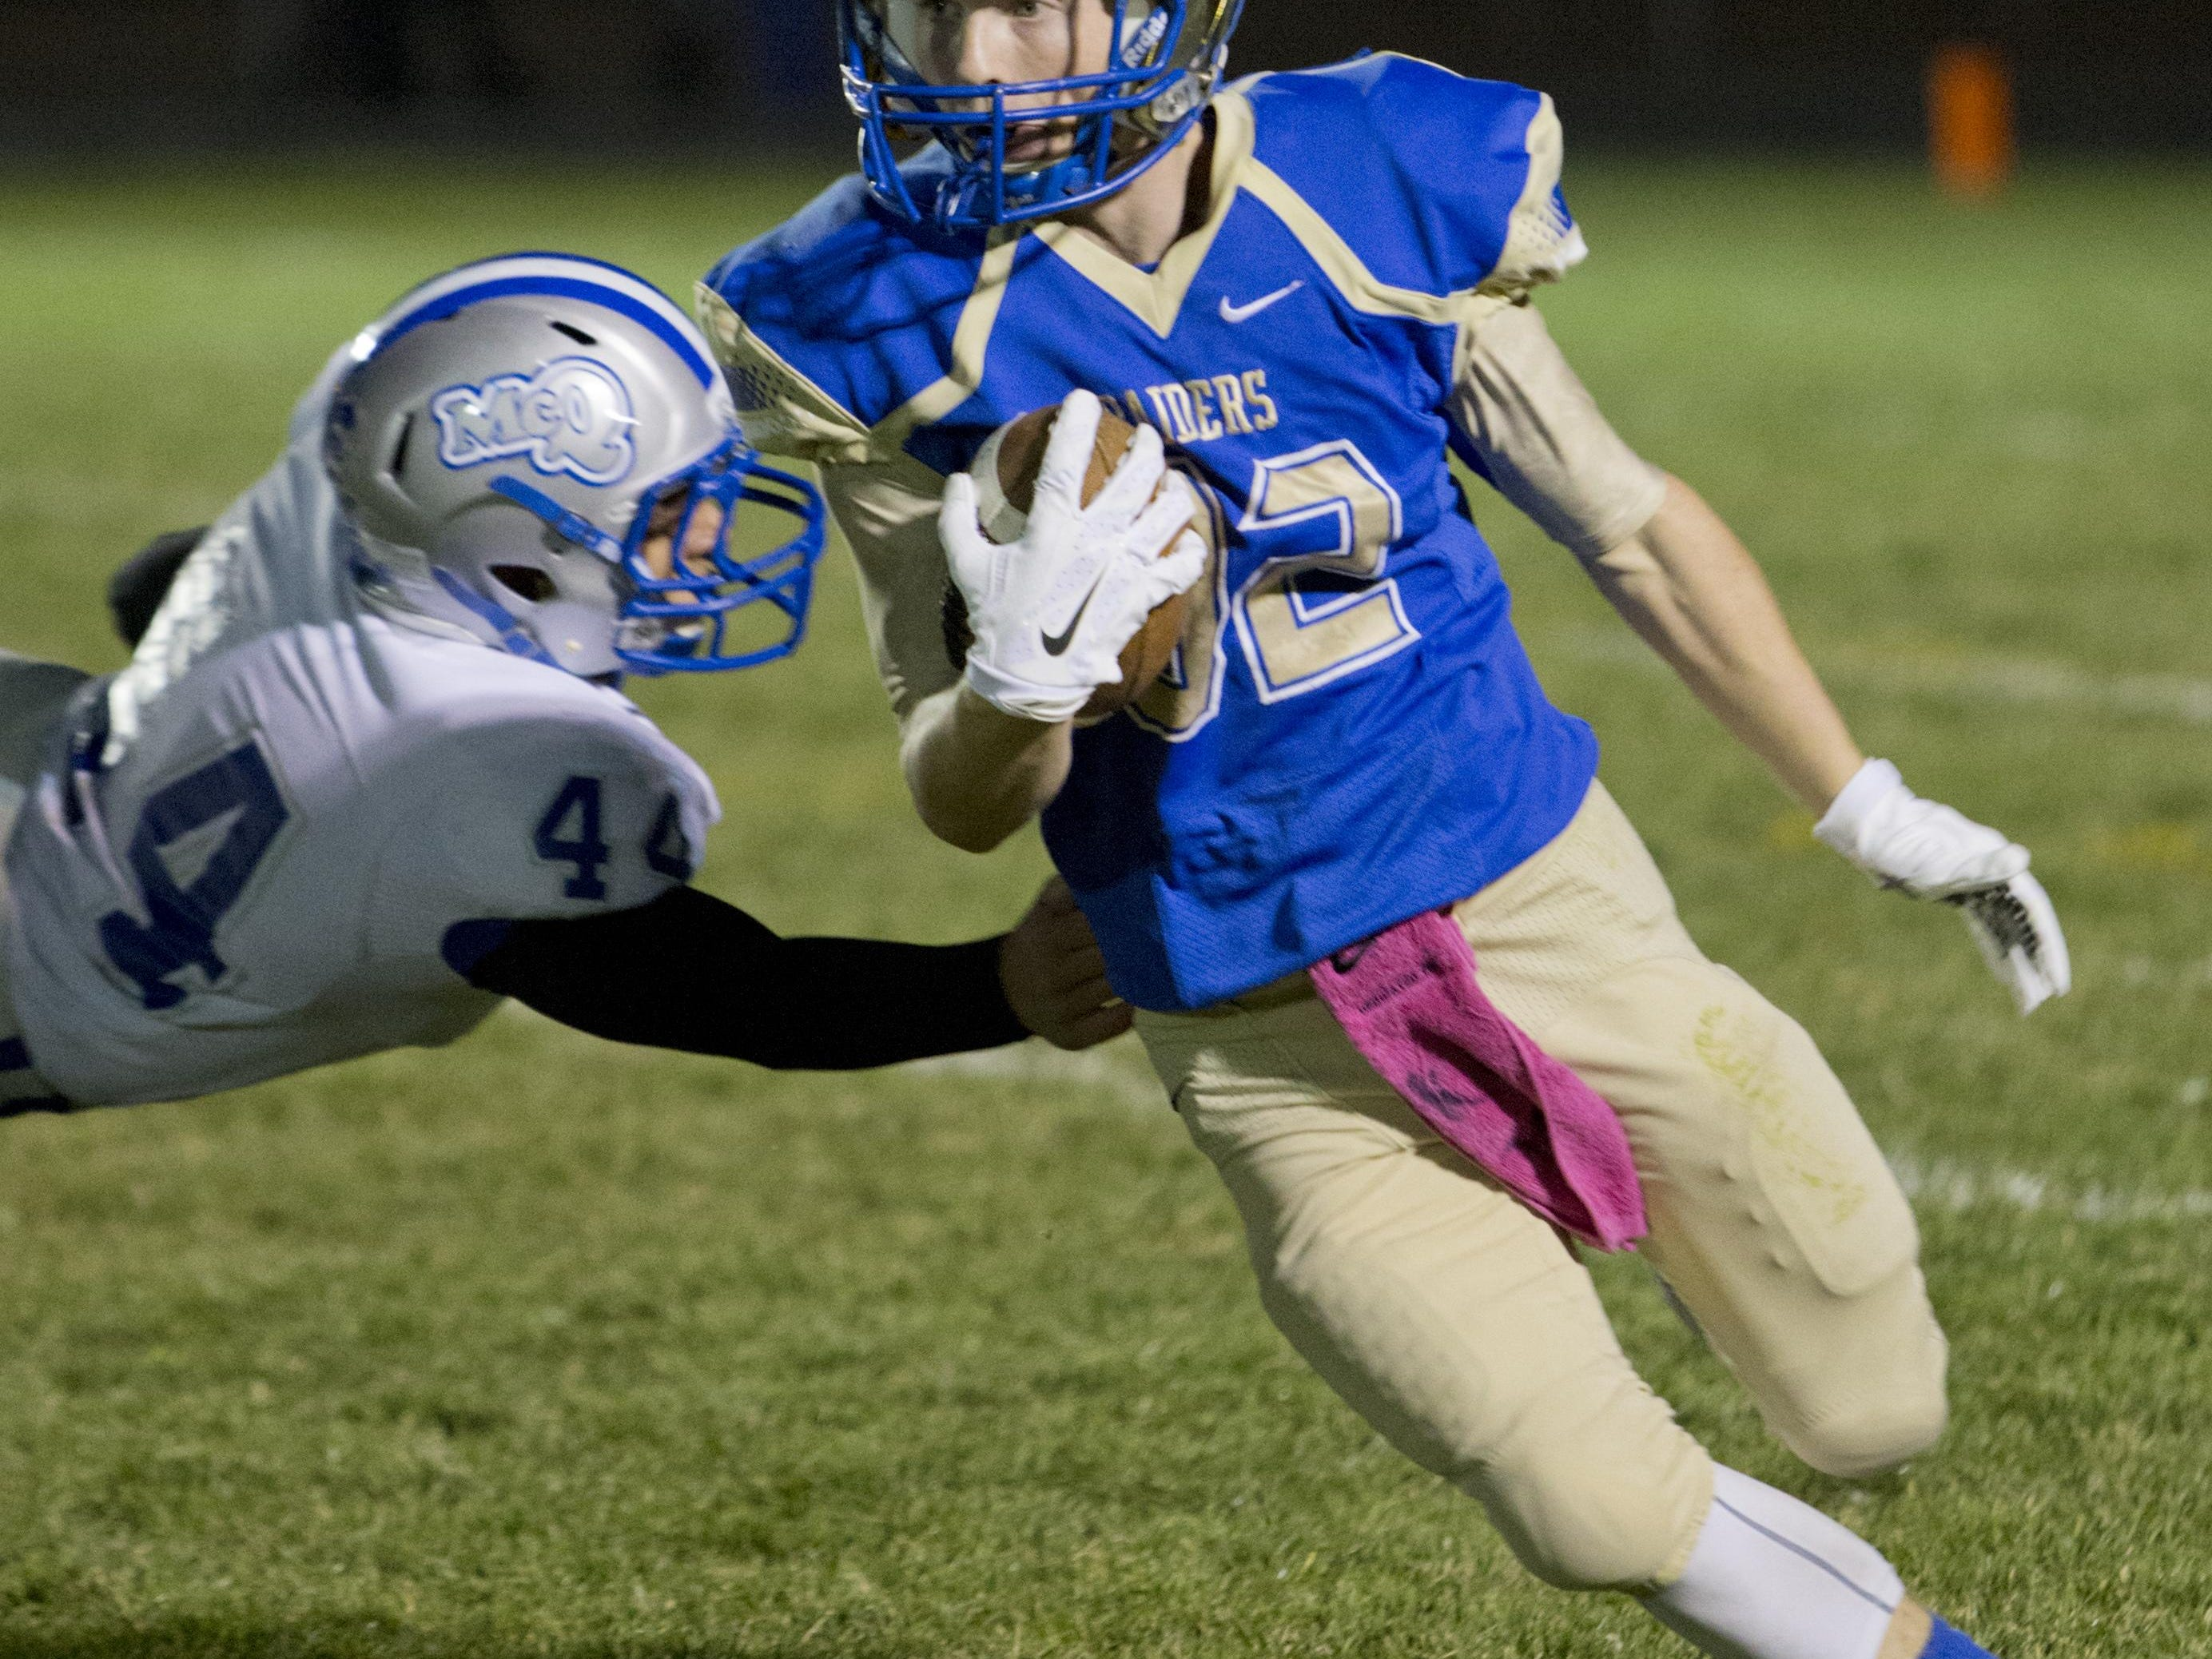 Reed's Robert Ferrel breaks a tackle against McQueen on Friday.